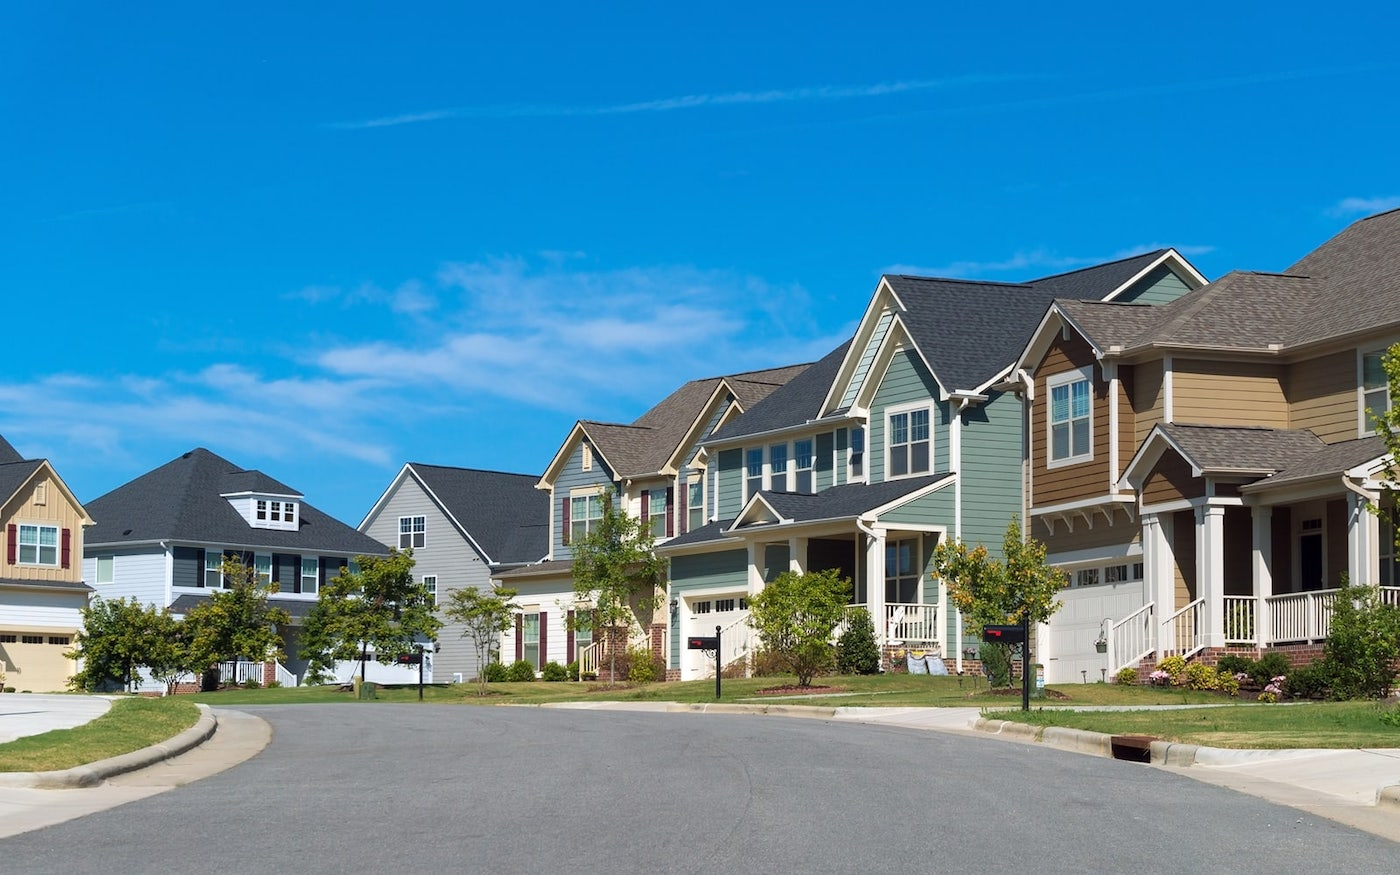 Home Improvement Tips for Your Morganville, New Jersey Home – Furnish your new home without breaking the bank